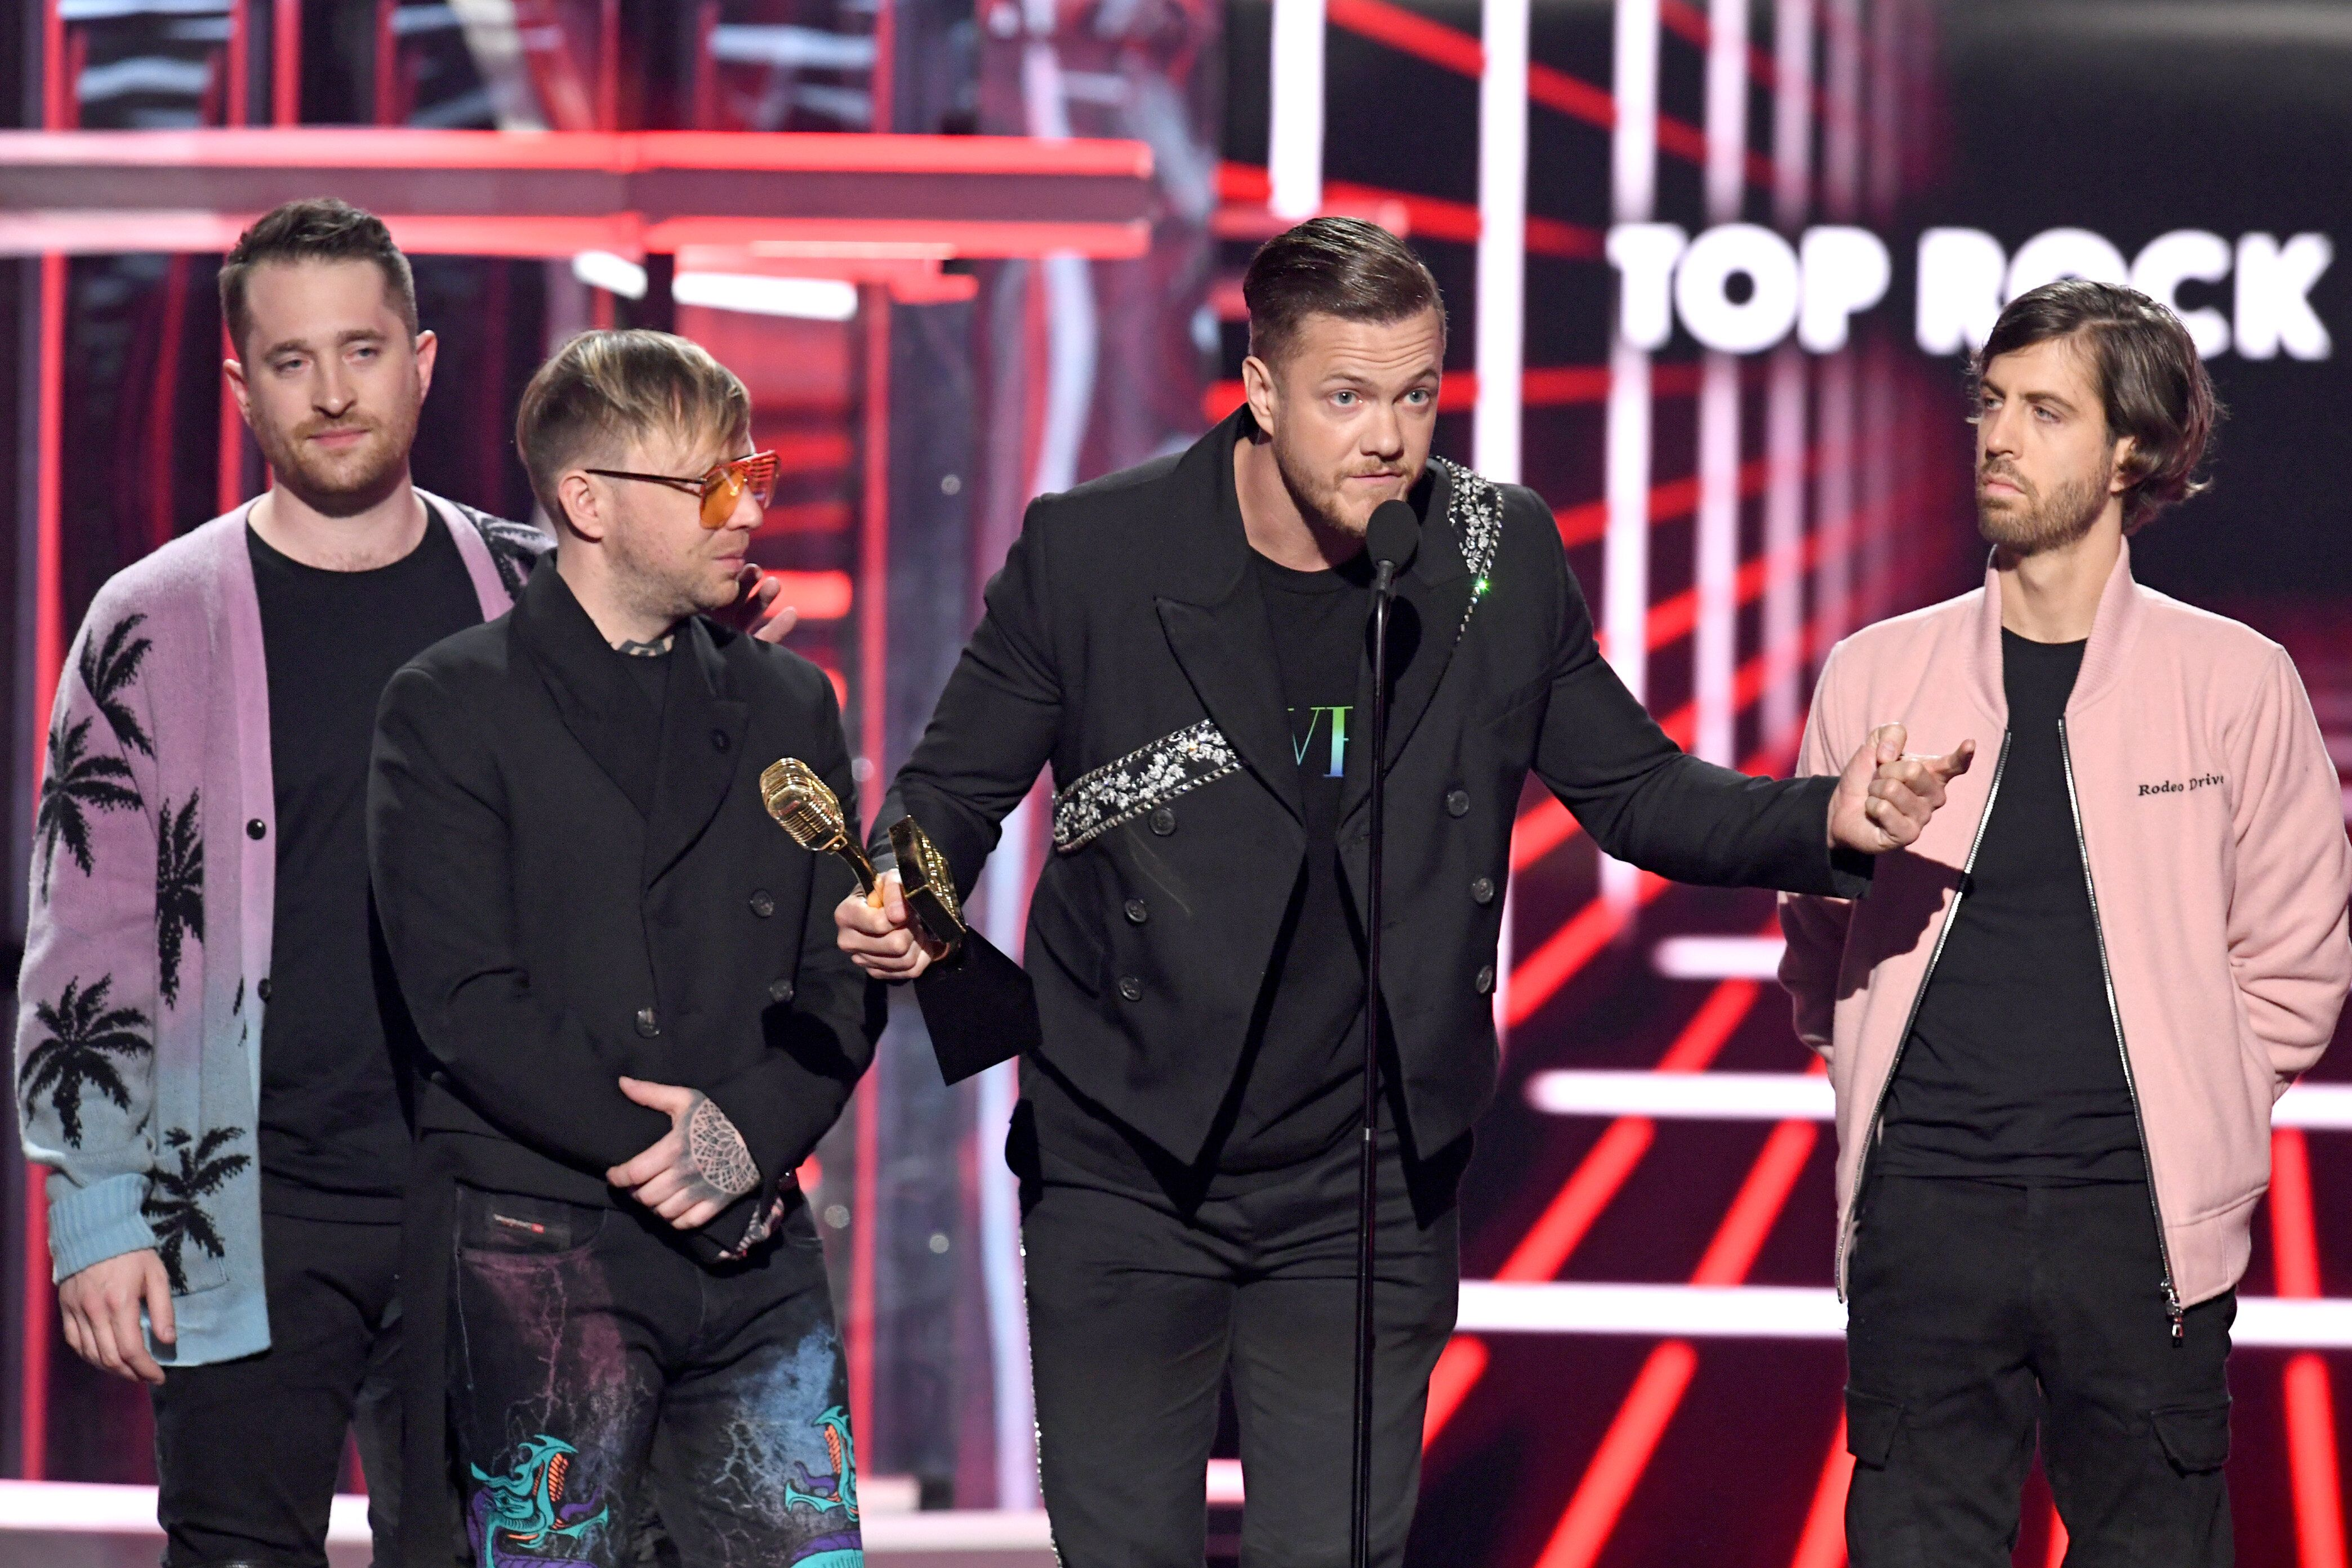 LAS VEGAS, NEVADA - MAY 01: (L-R) Daniel Platzman, Ben McKee, Dan Reynolds, and Wayne Sermon of Imagine Dragons accept the Top Rock Artist award onstage during the 2019 Billboard Music Awards at MGM Grand Garden Arena on May 01, 2019 in Las Vegas, Nevada. (Photo by Kevin Winter/Getty Images for dcp)